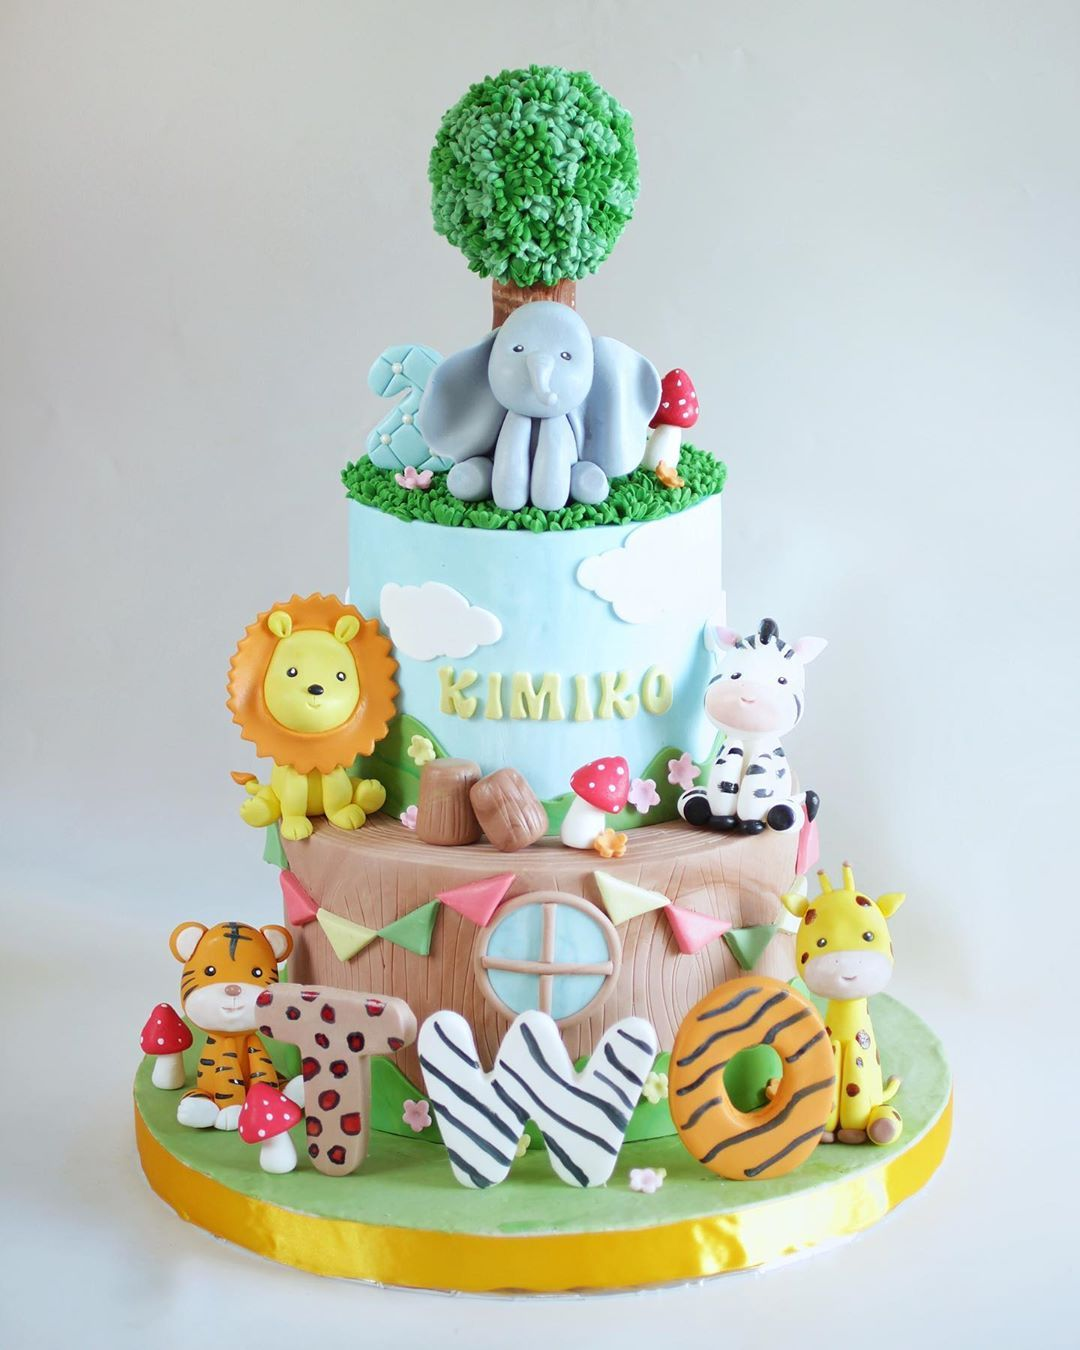 Birthday Cake Jakarta On Instagram Recreated The Same Design I Have Once Made But With The Addition Of Elephant On Top Hoho I In 2020 Cake Birthday Cake Birthday